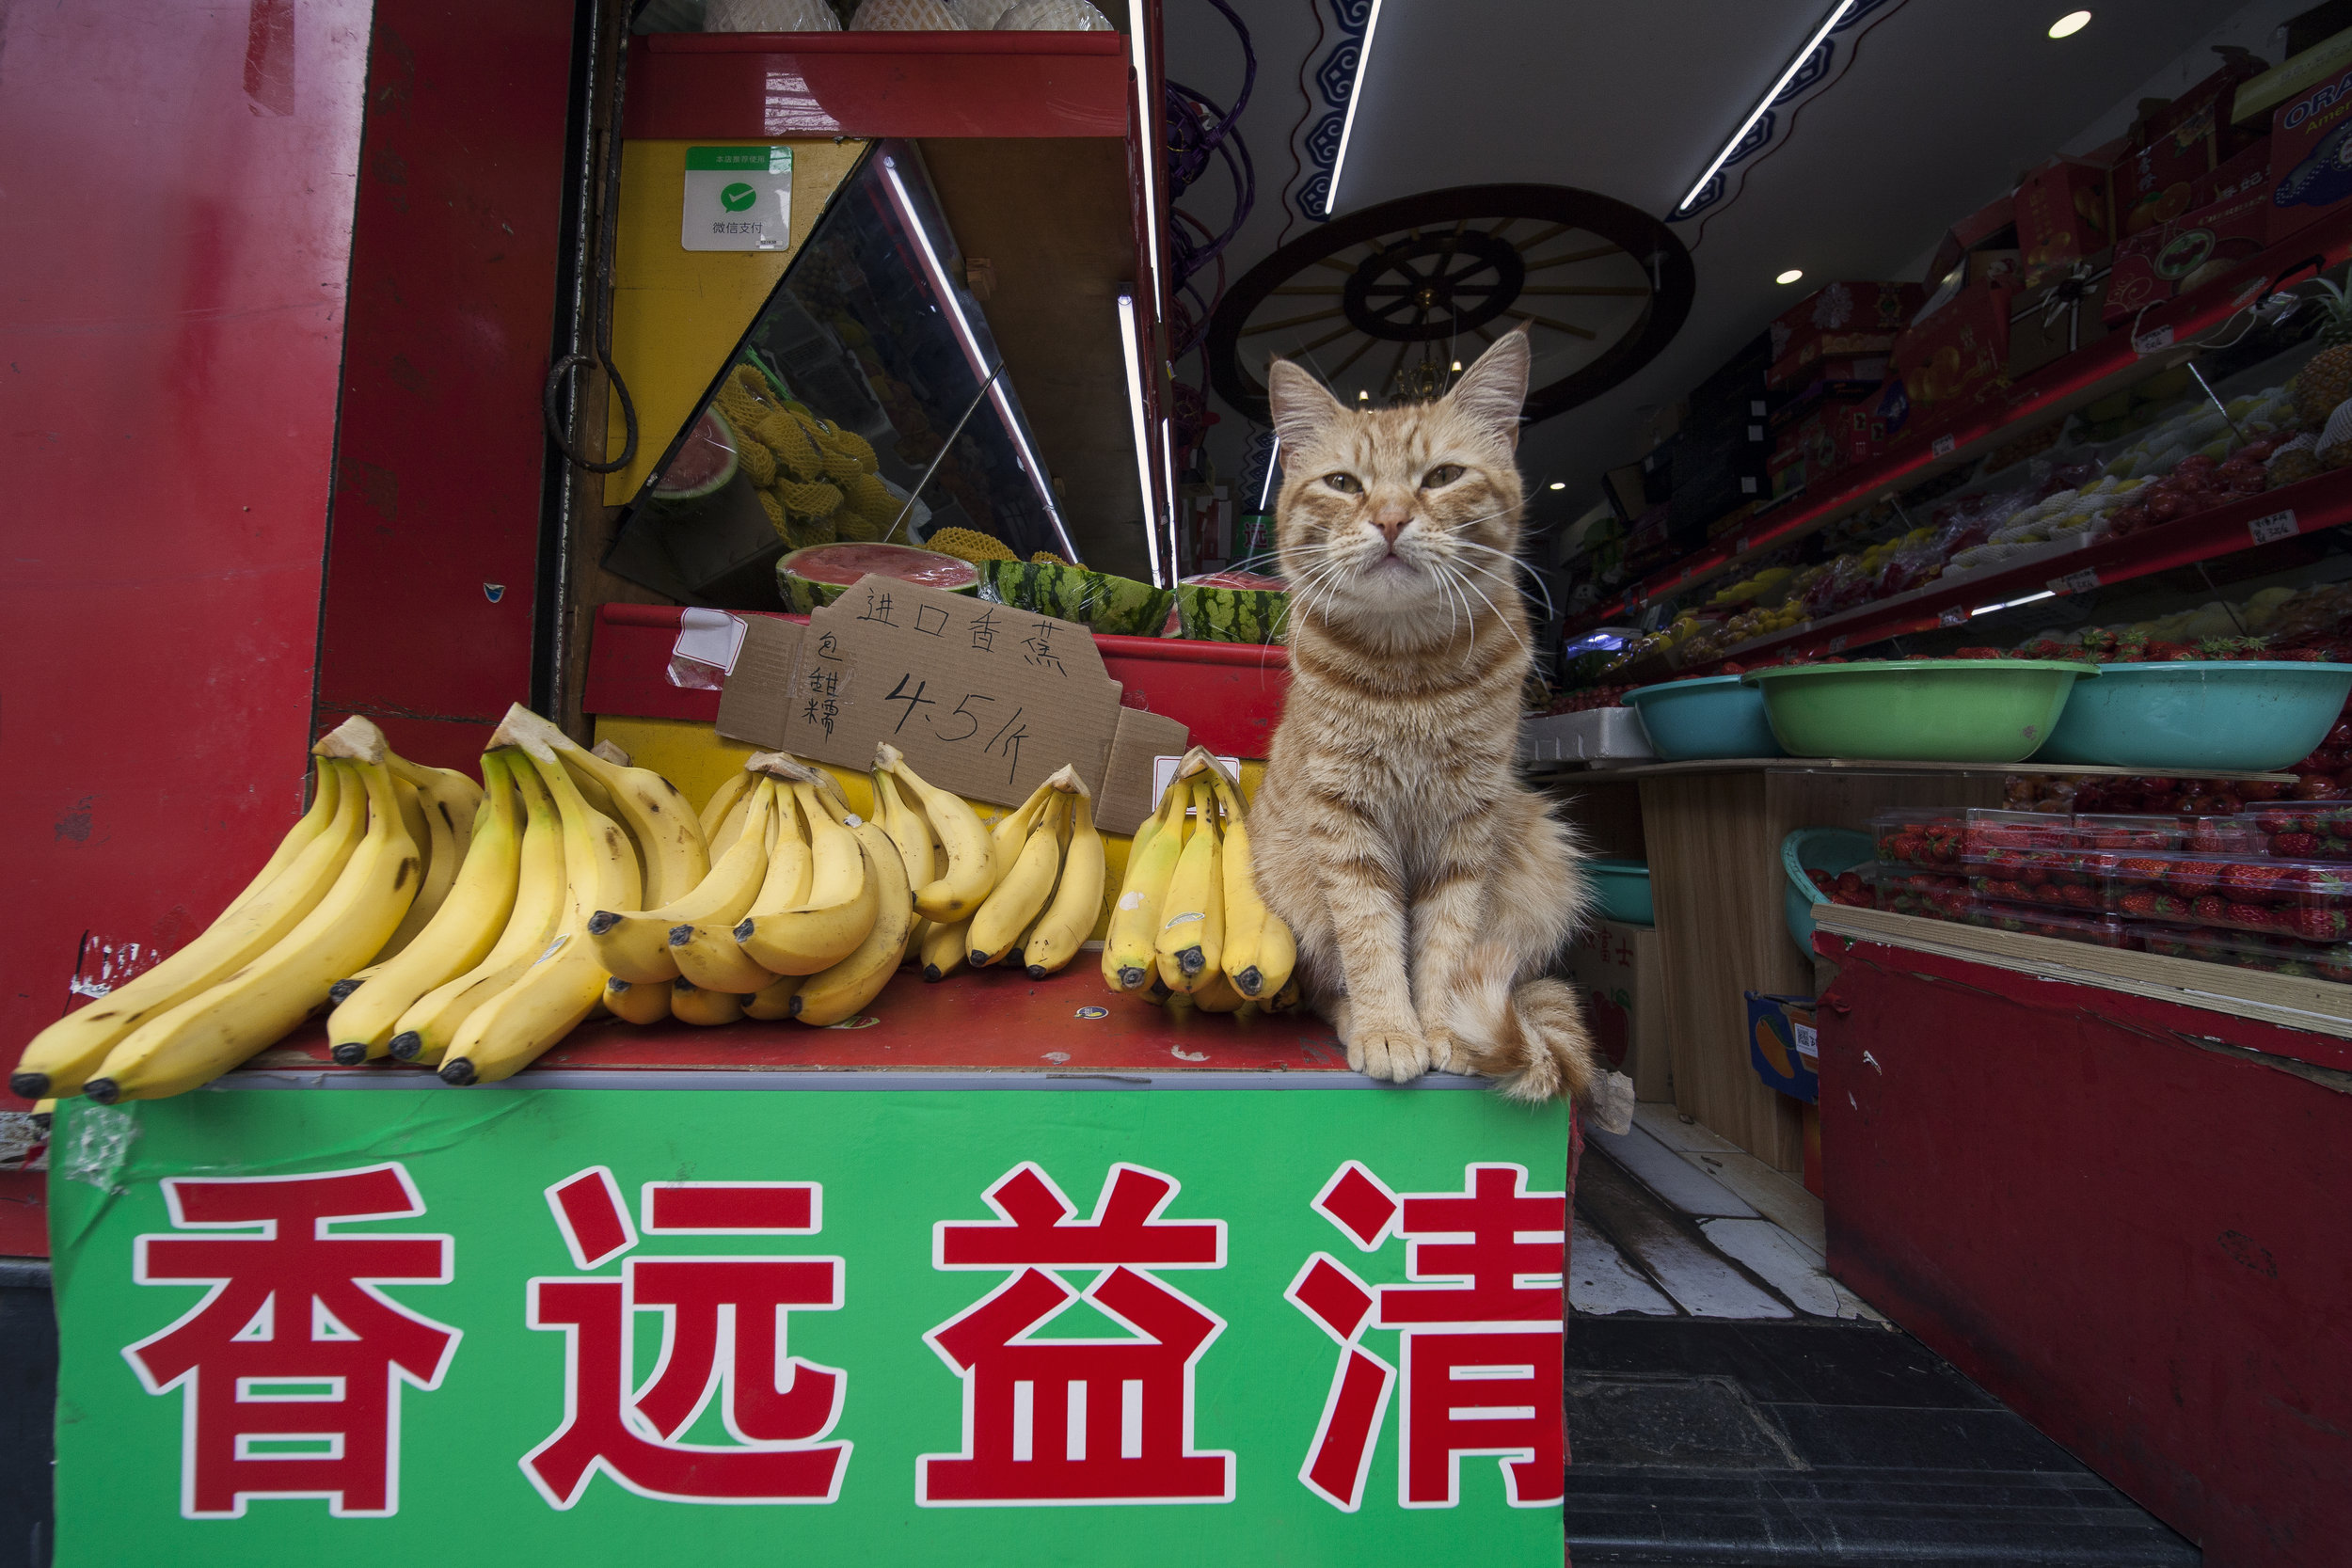 Cat and Bananas